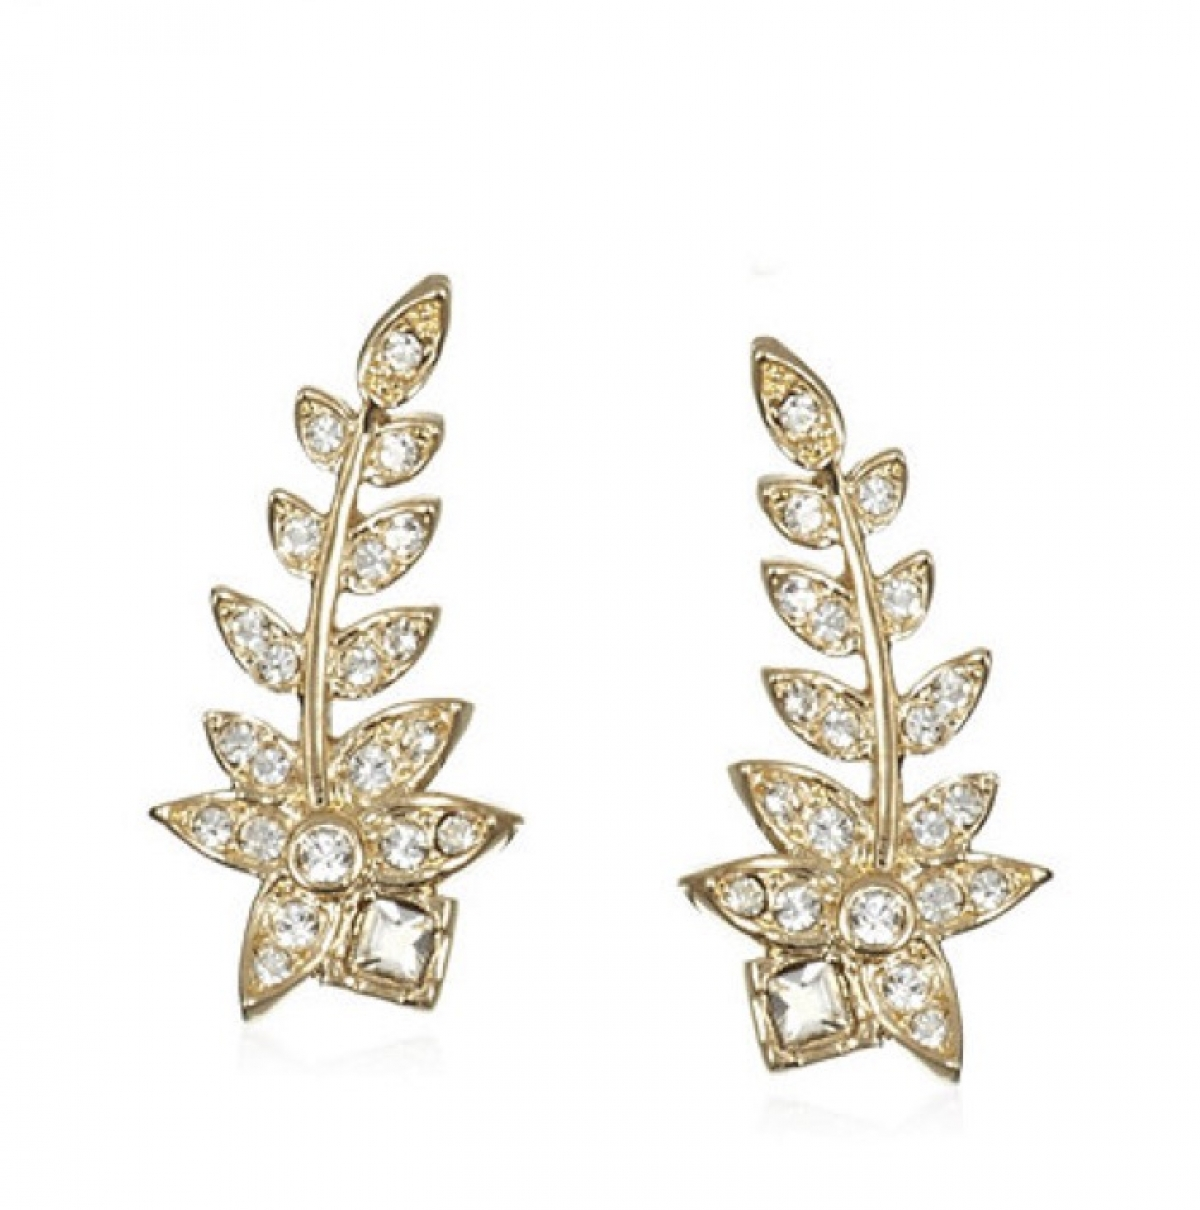 Crystal Fern Ear Climber Earrings Gold